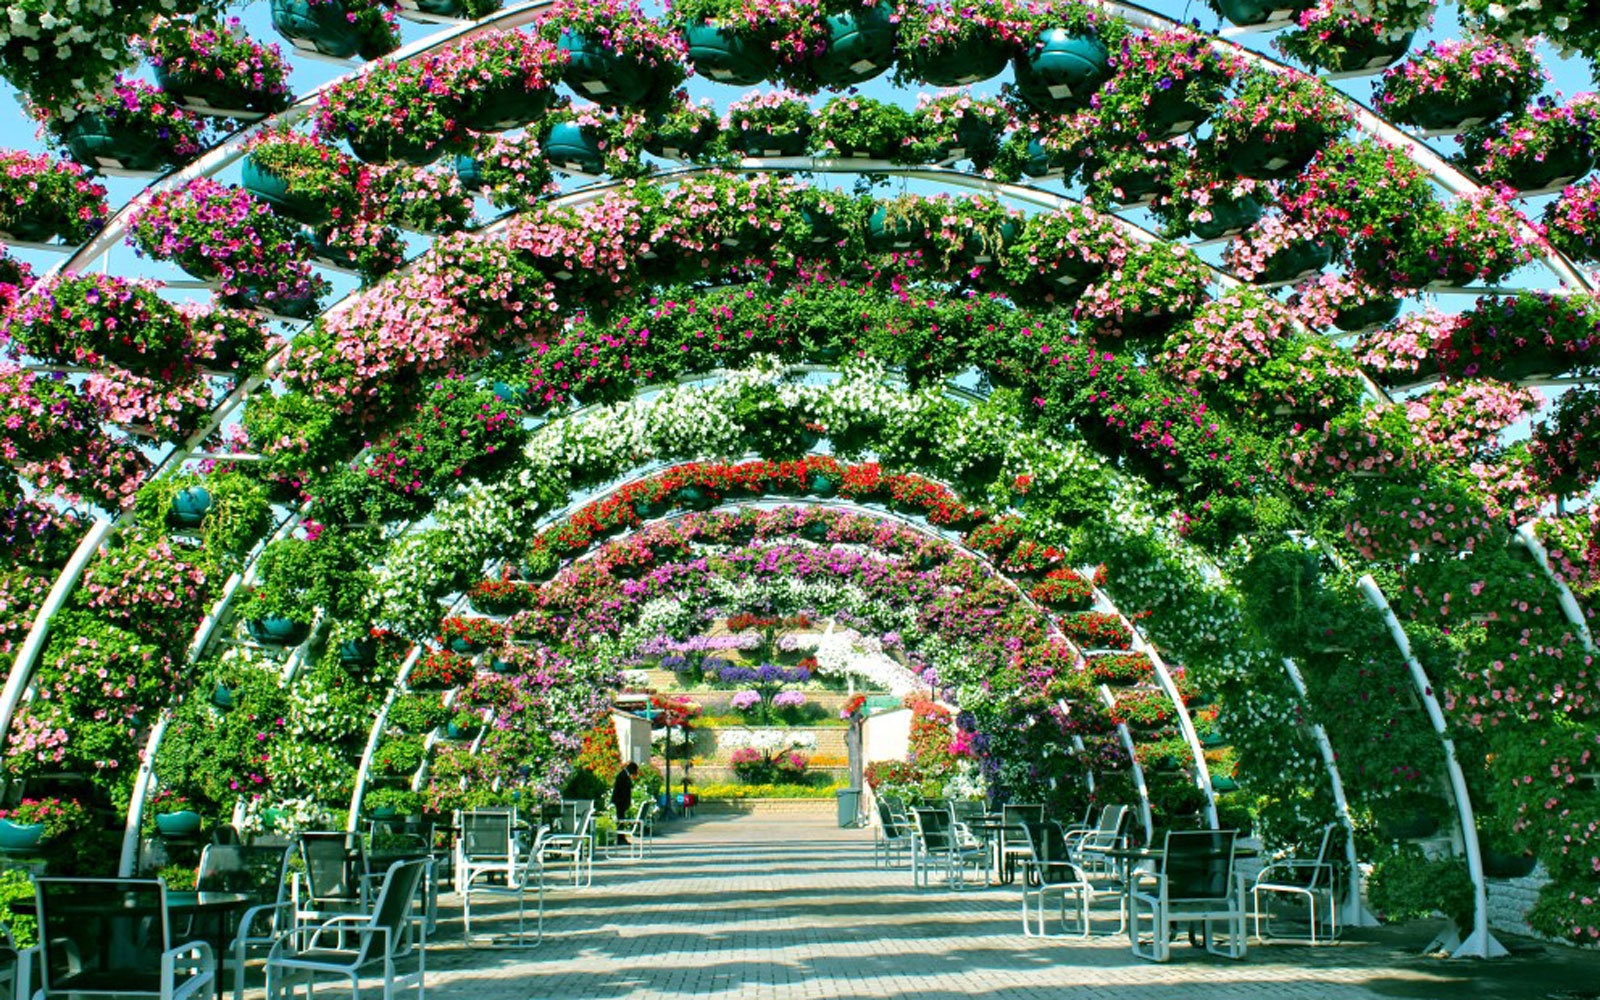 Dubai Miracle Garden Seating Area